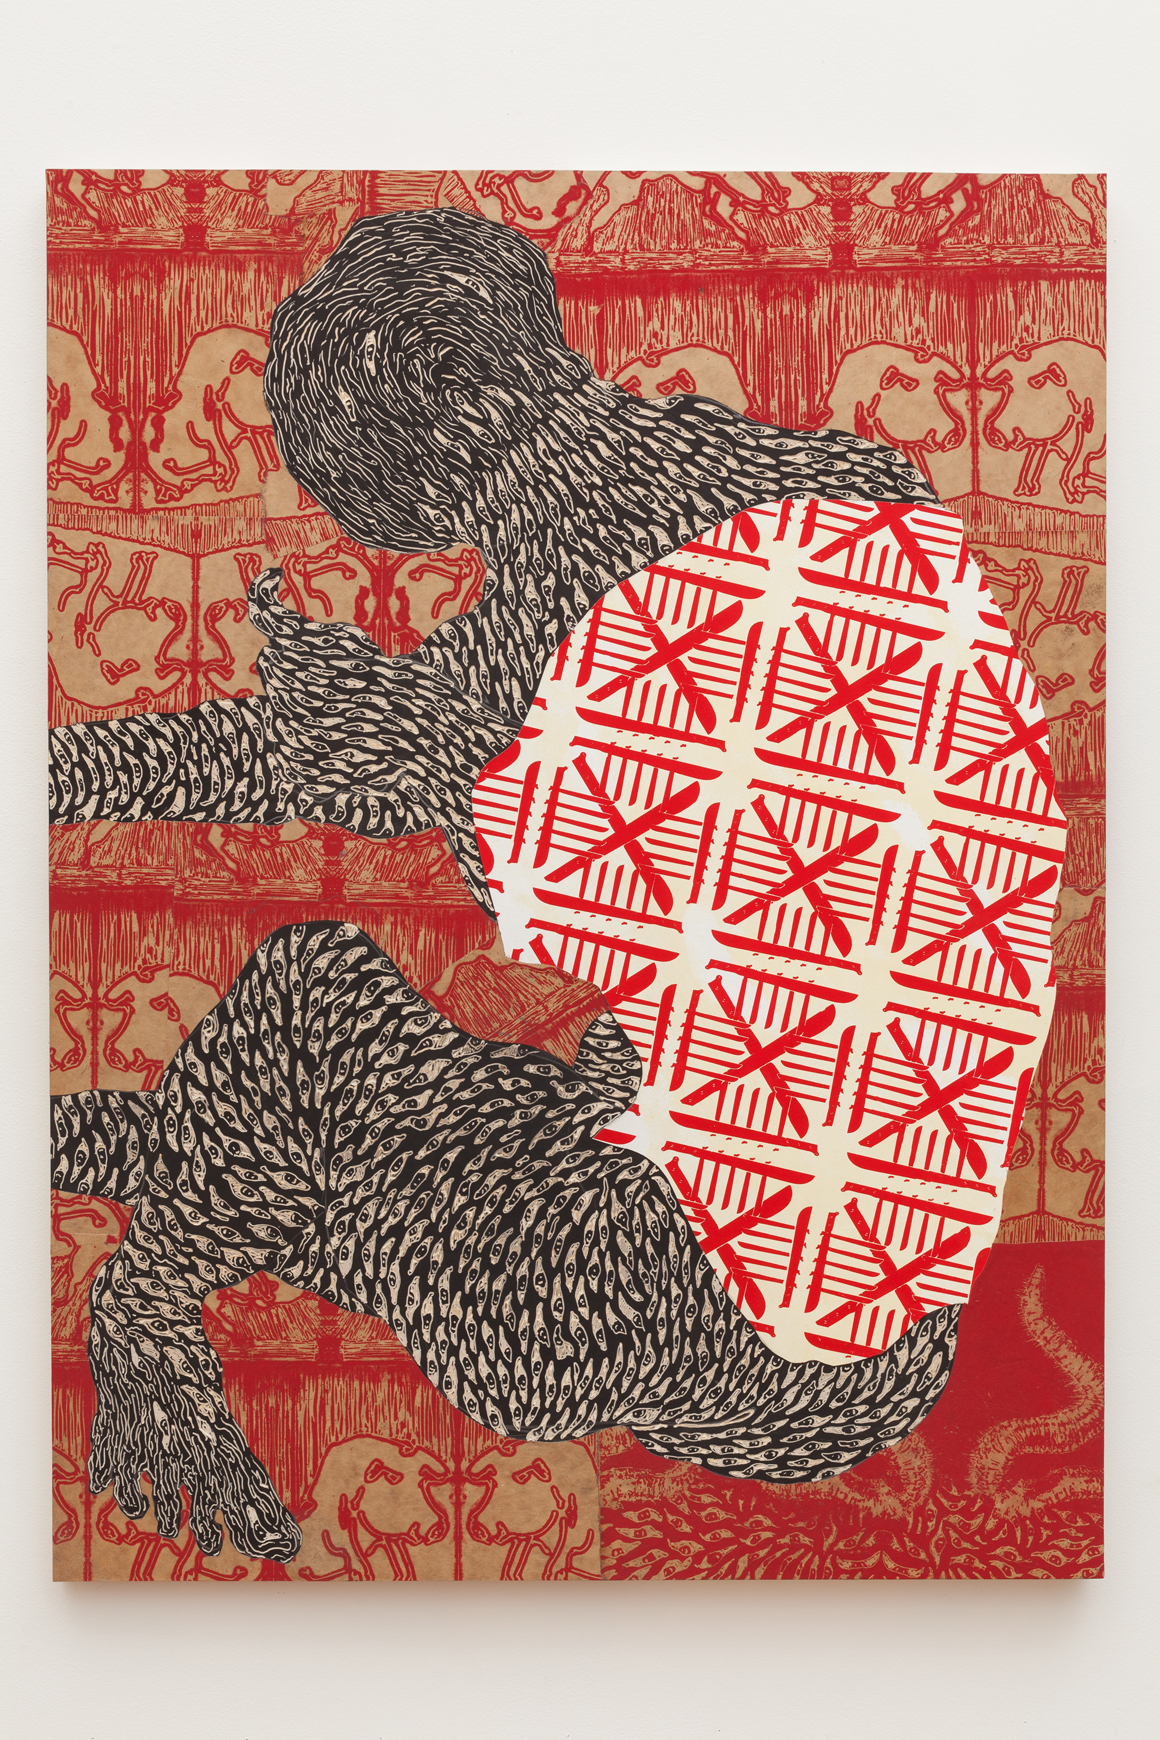 """<p><span class=""""name"""">Didier William</span><br><em>M' Pito Rete a Kochon Yo</em><span class='media'>Collage, carving and ink on panel</span>48 x 36 in (121.9 x 91.4 cm)<br>2018<br></p>"""